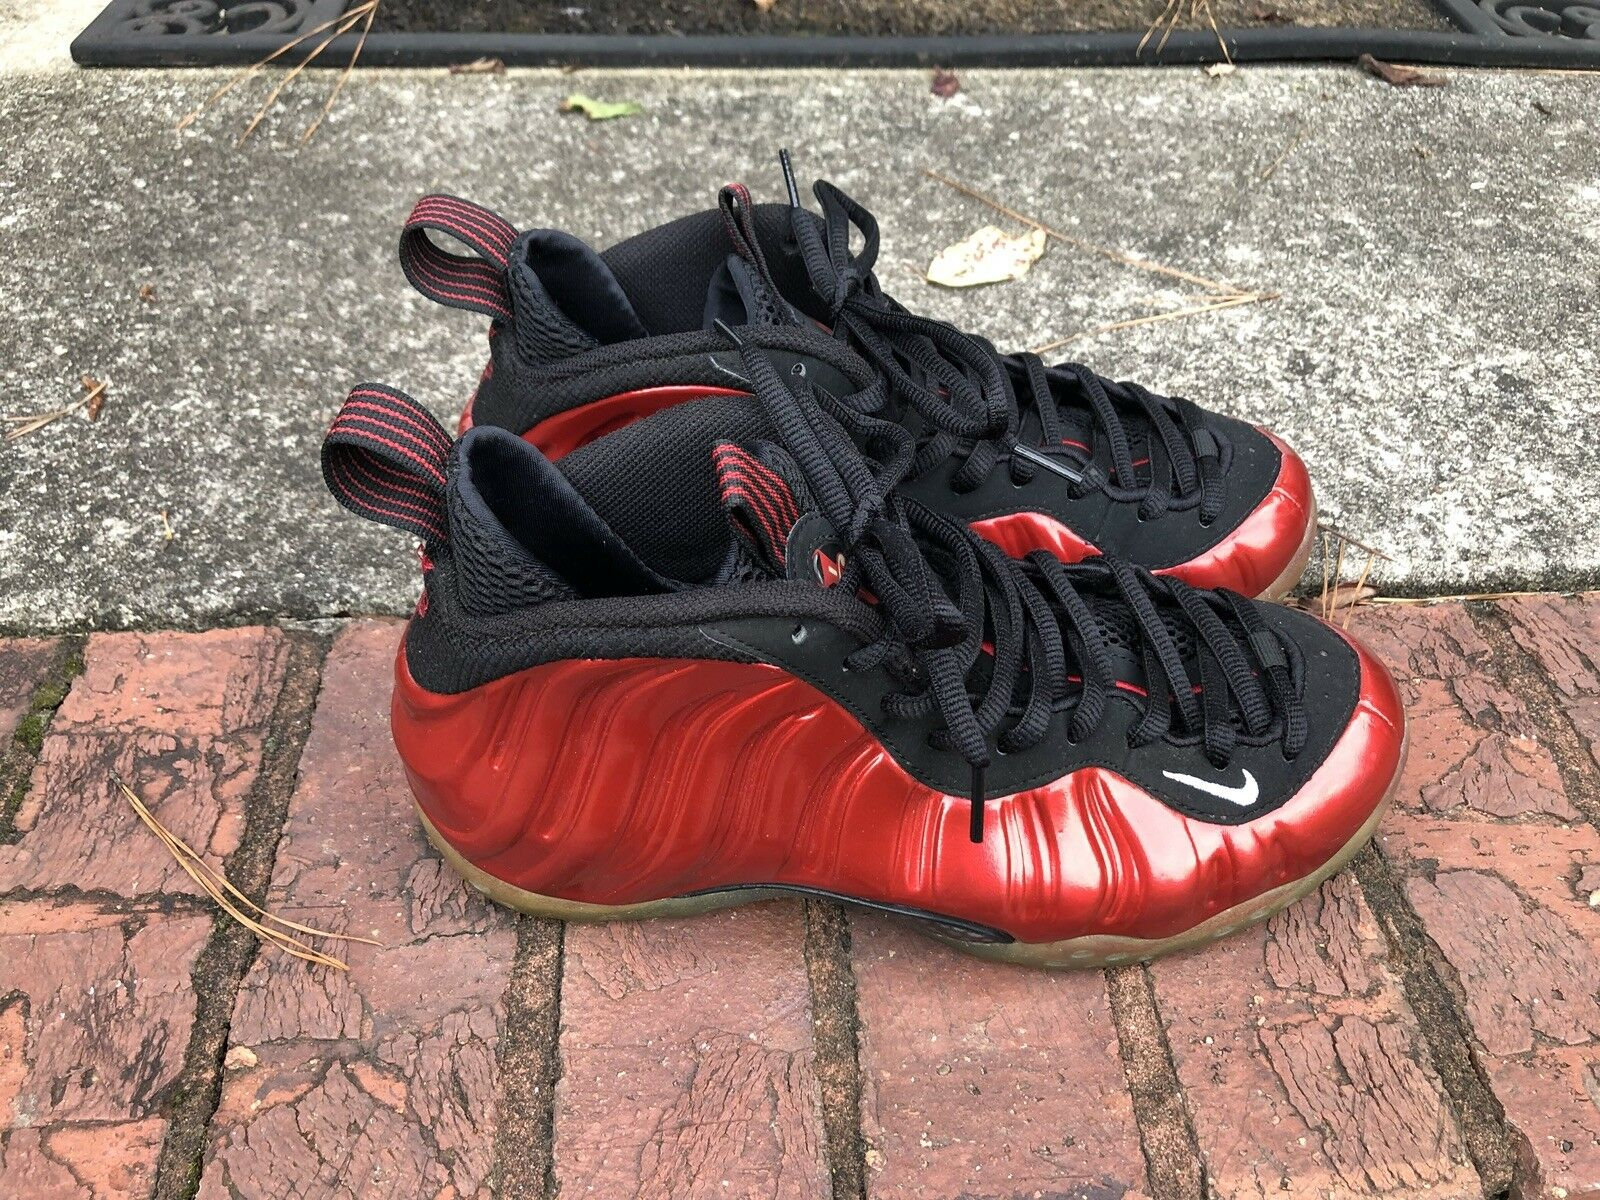 Nike Air Metallic Red Foamposite One Size 7